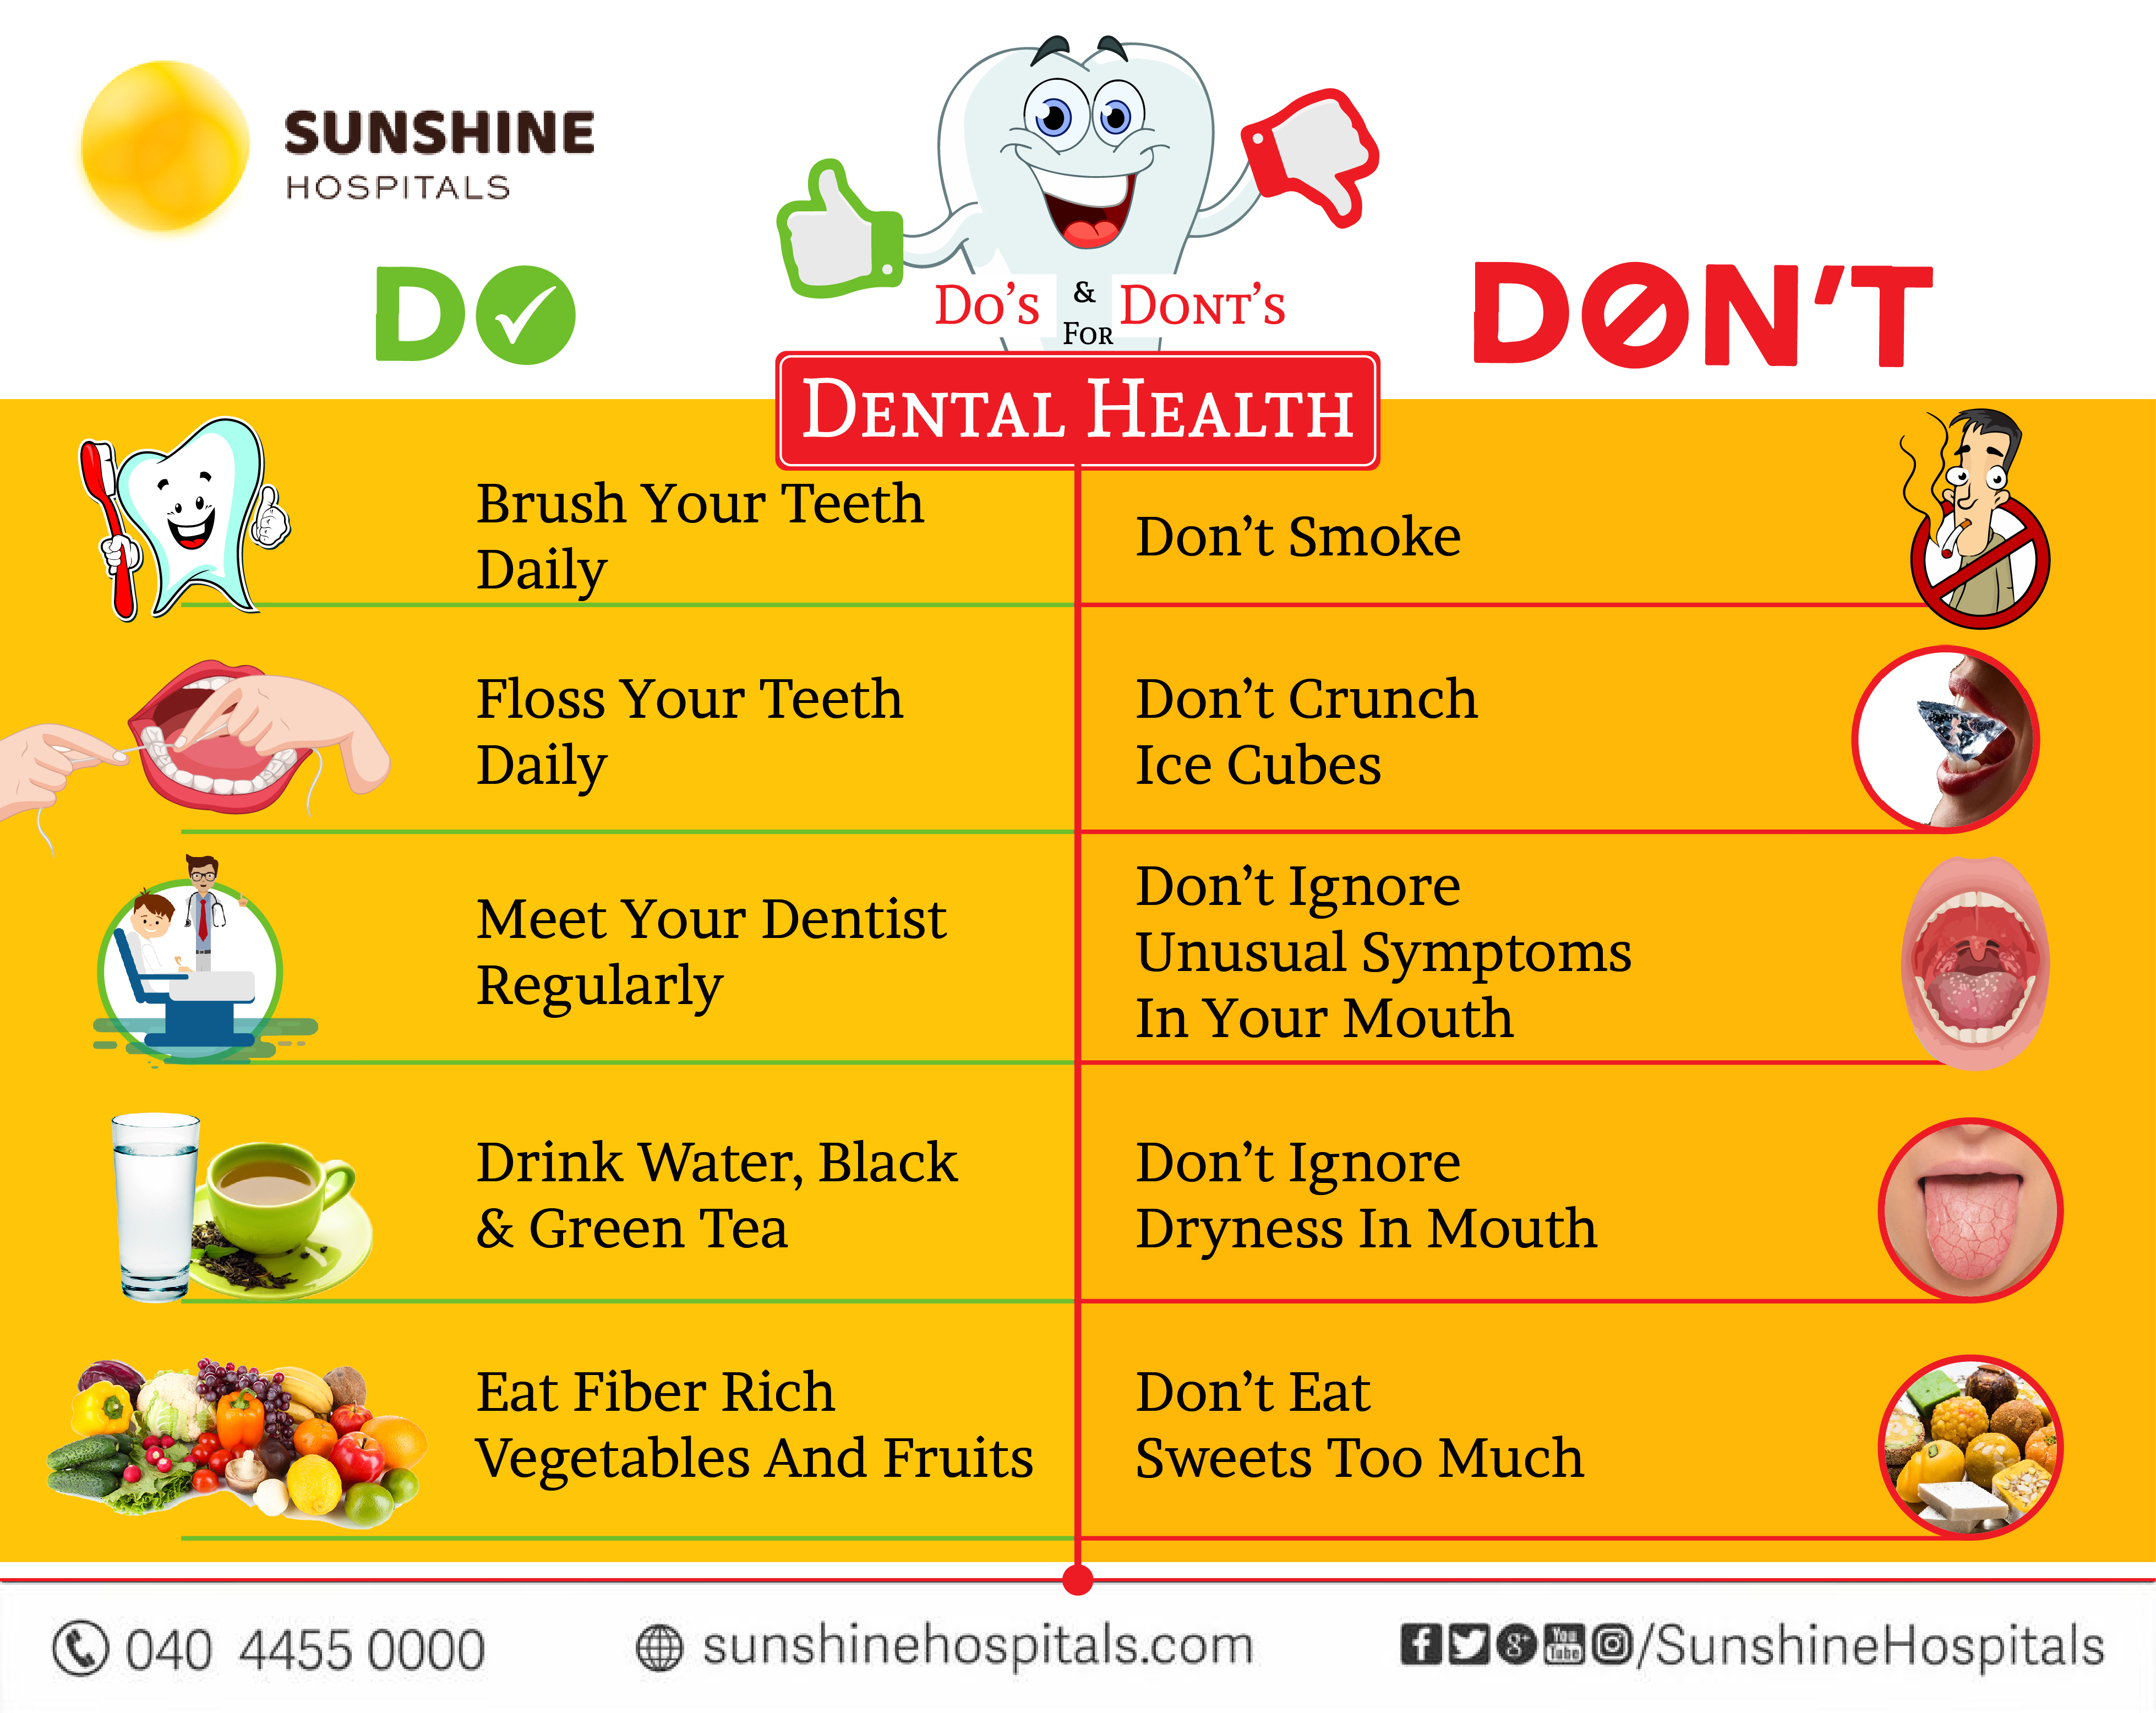 dos-nd-dont-for-dental-health